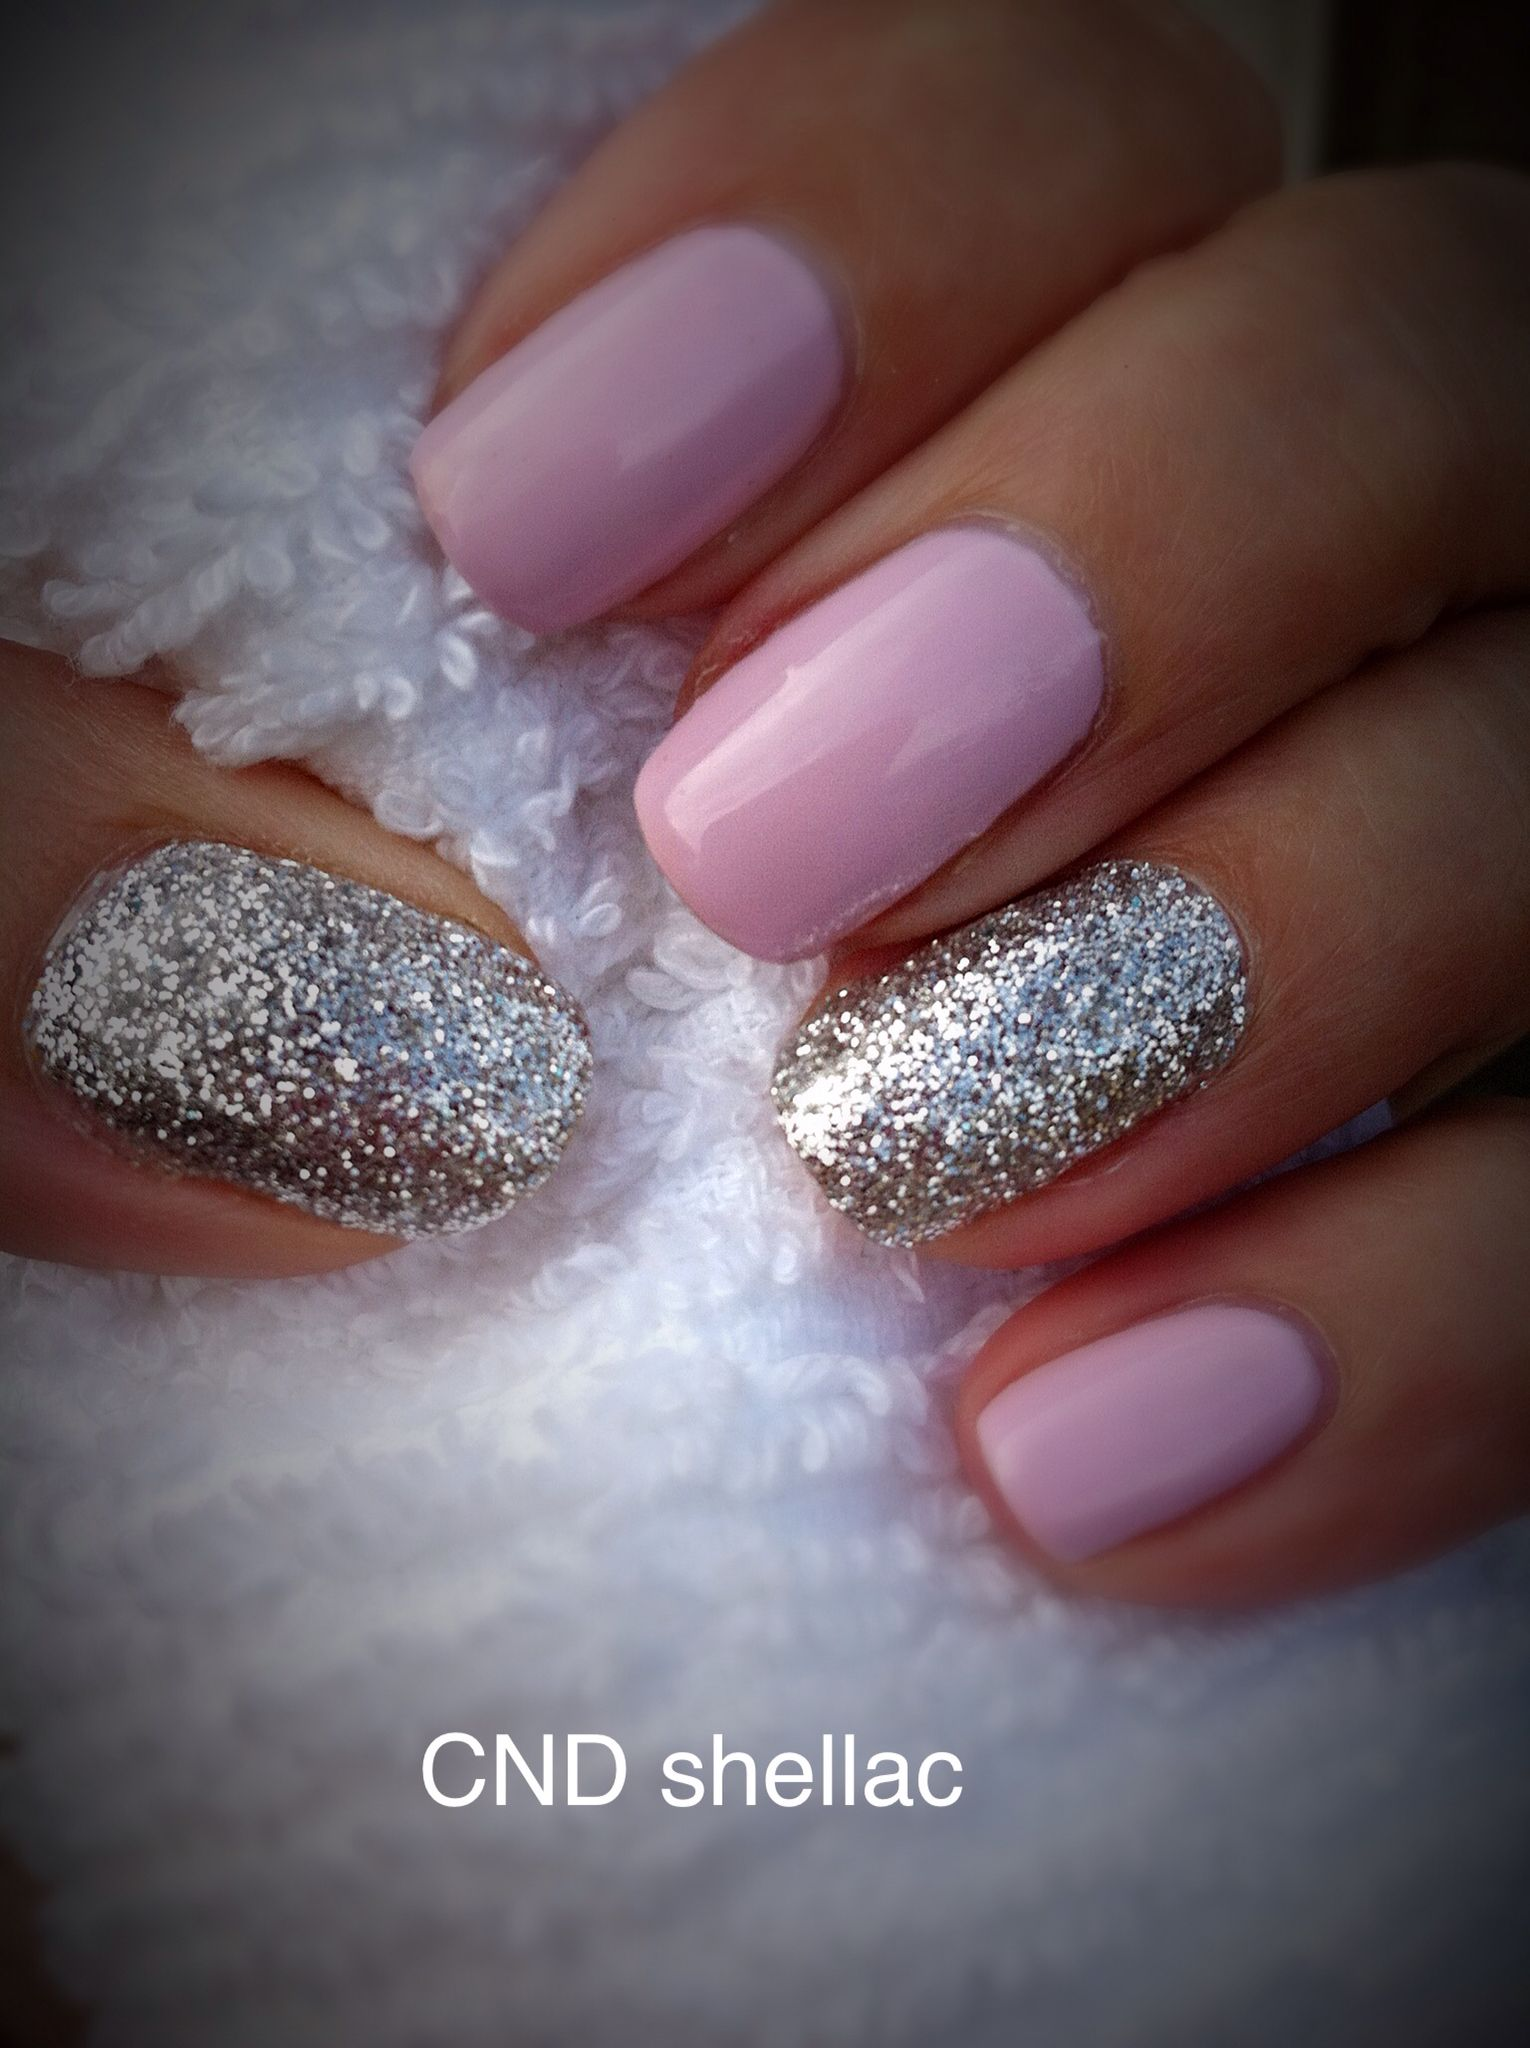 Cnd Shellac And Lecente Glitter On Accent Nails Nails